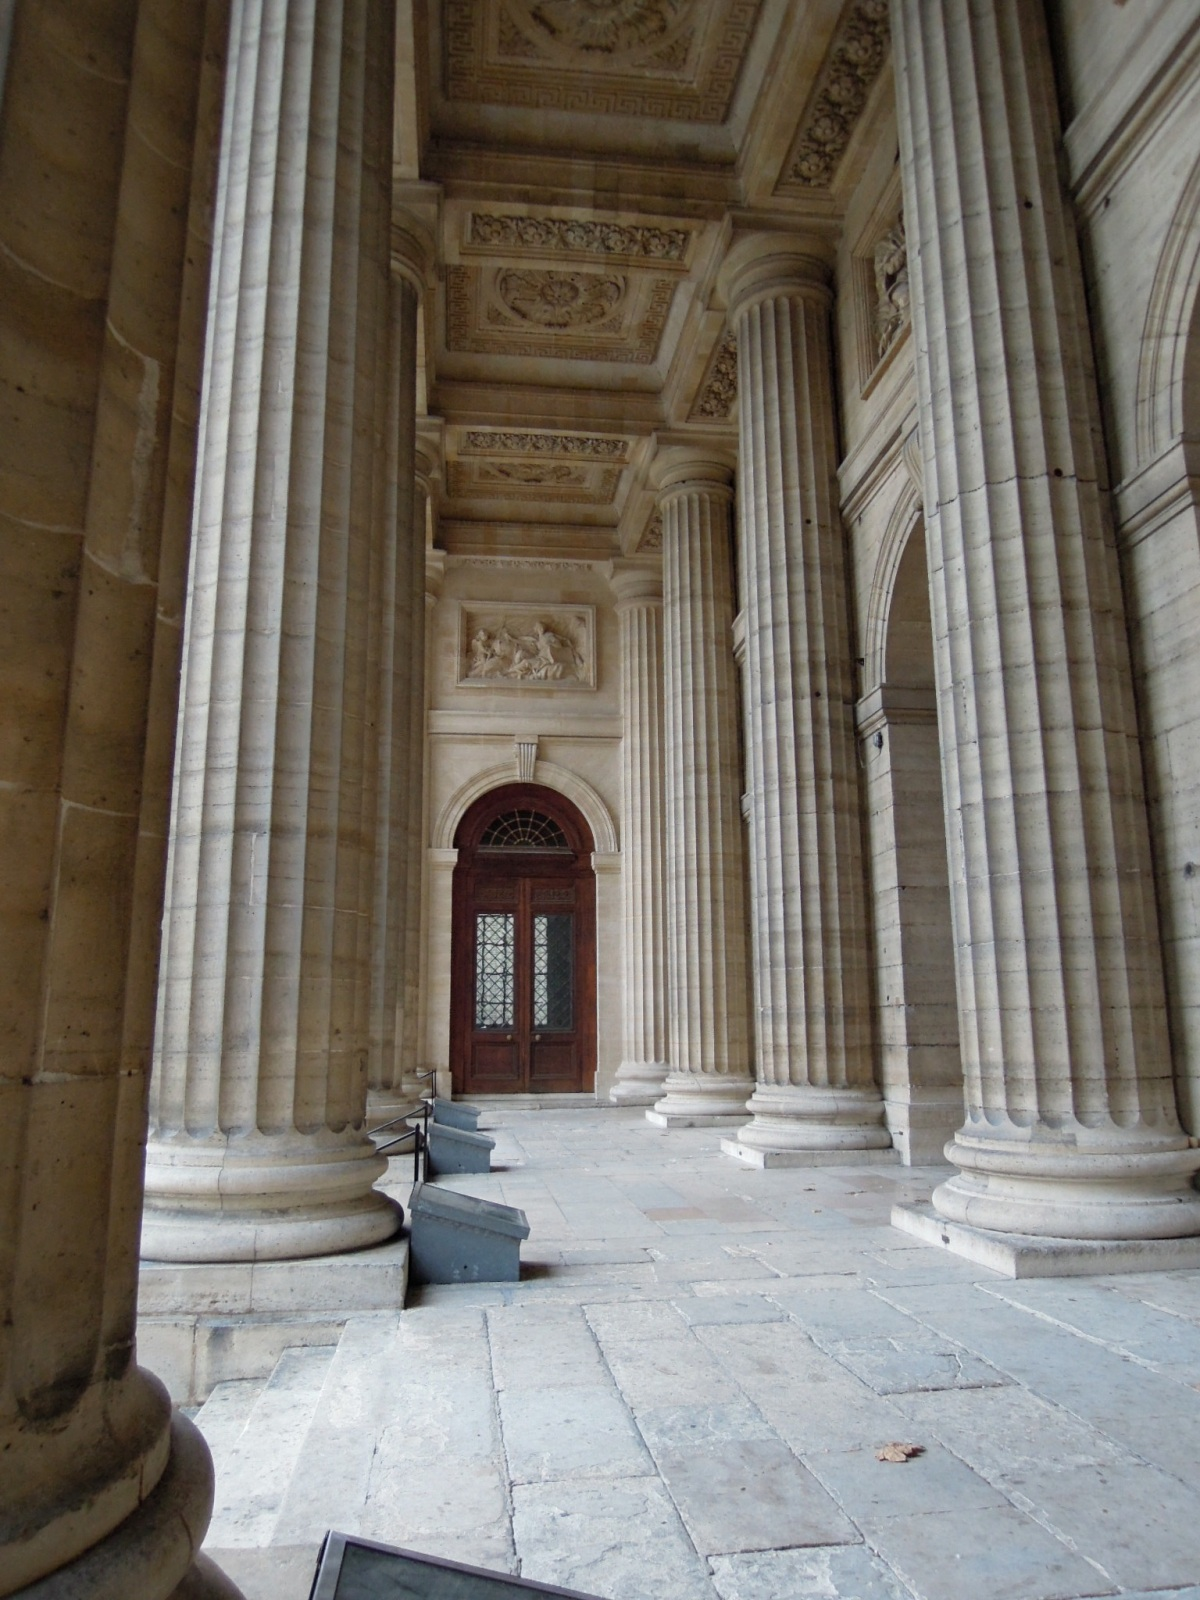 Columns outside the entrance to Saint-Sulpice